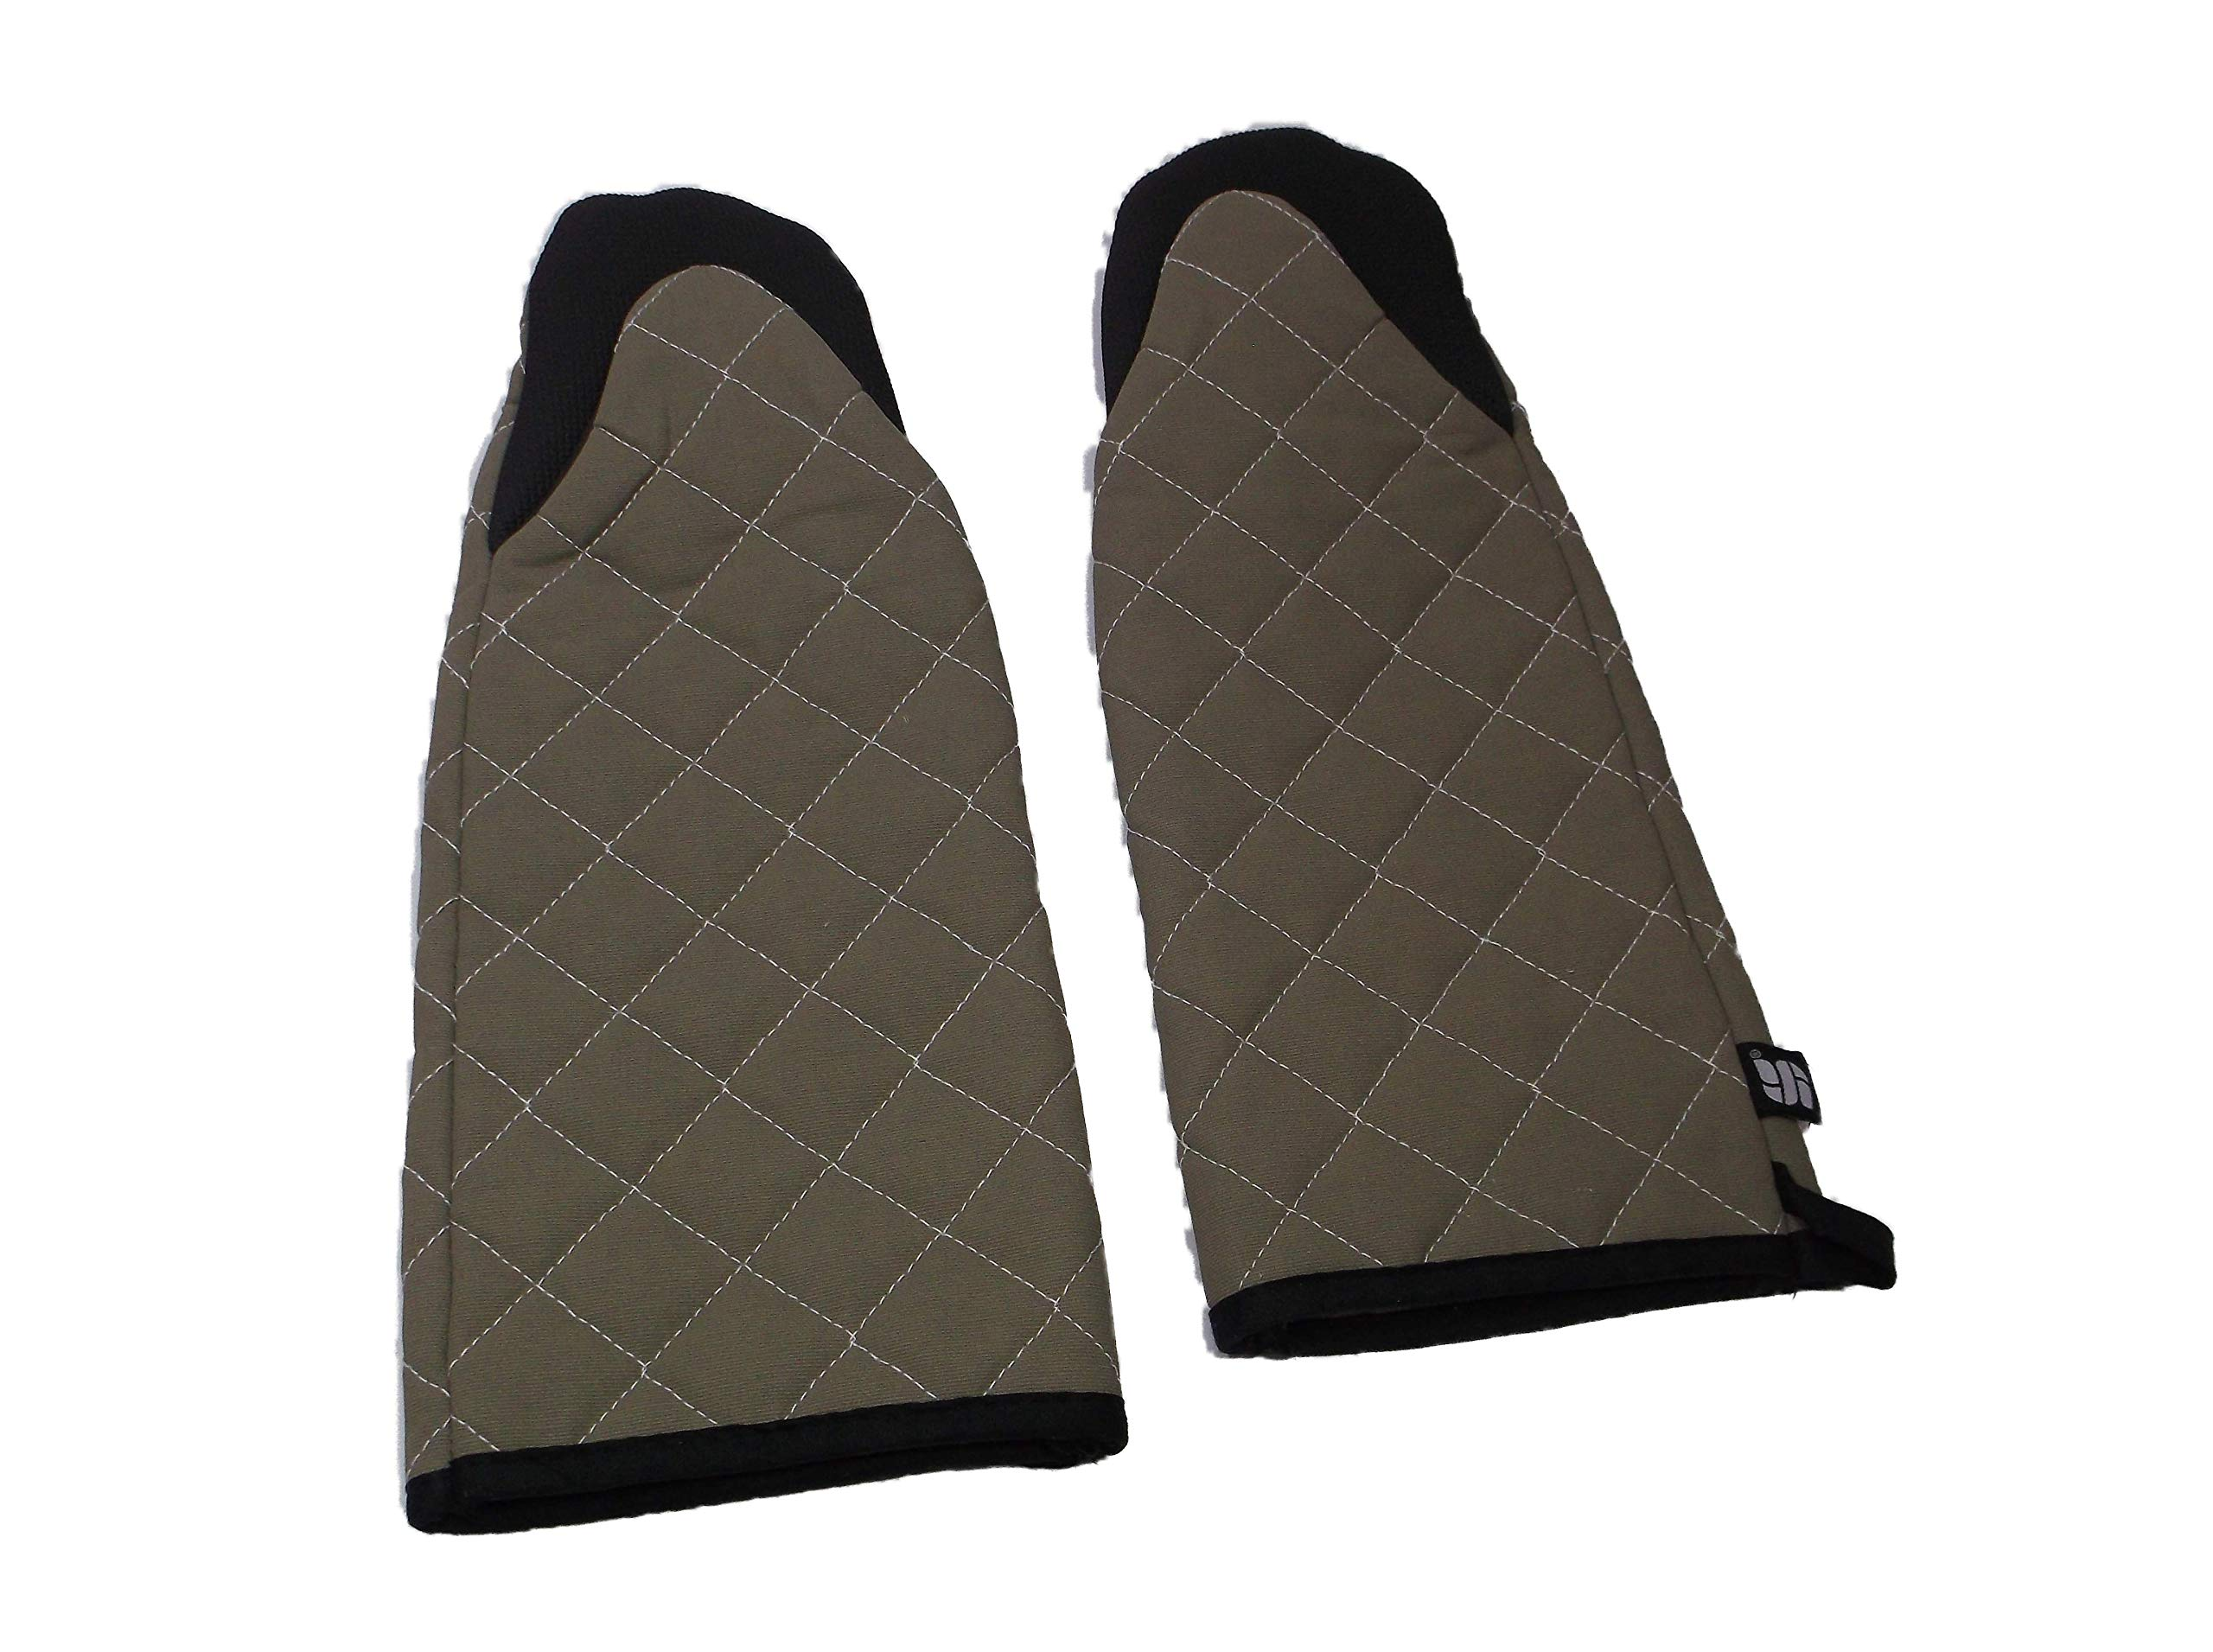 San Jamar 810PM17 Set of 2 - (2) Puppet Style Oven Mitts 17 inch 500 Degrees F Resistance Cotton Neoprene - Brand New, lot of 2 restaurant bakery